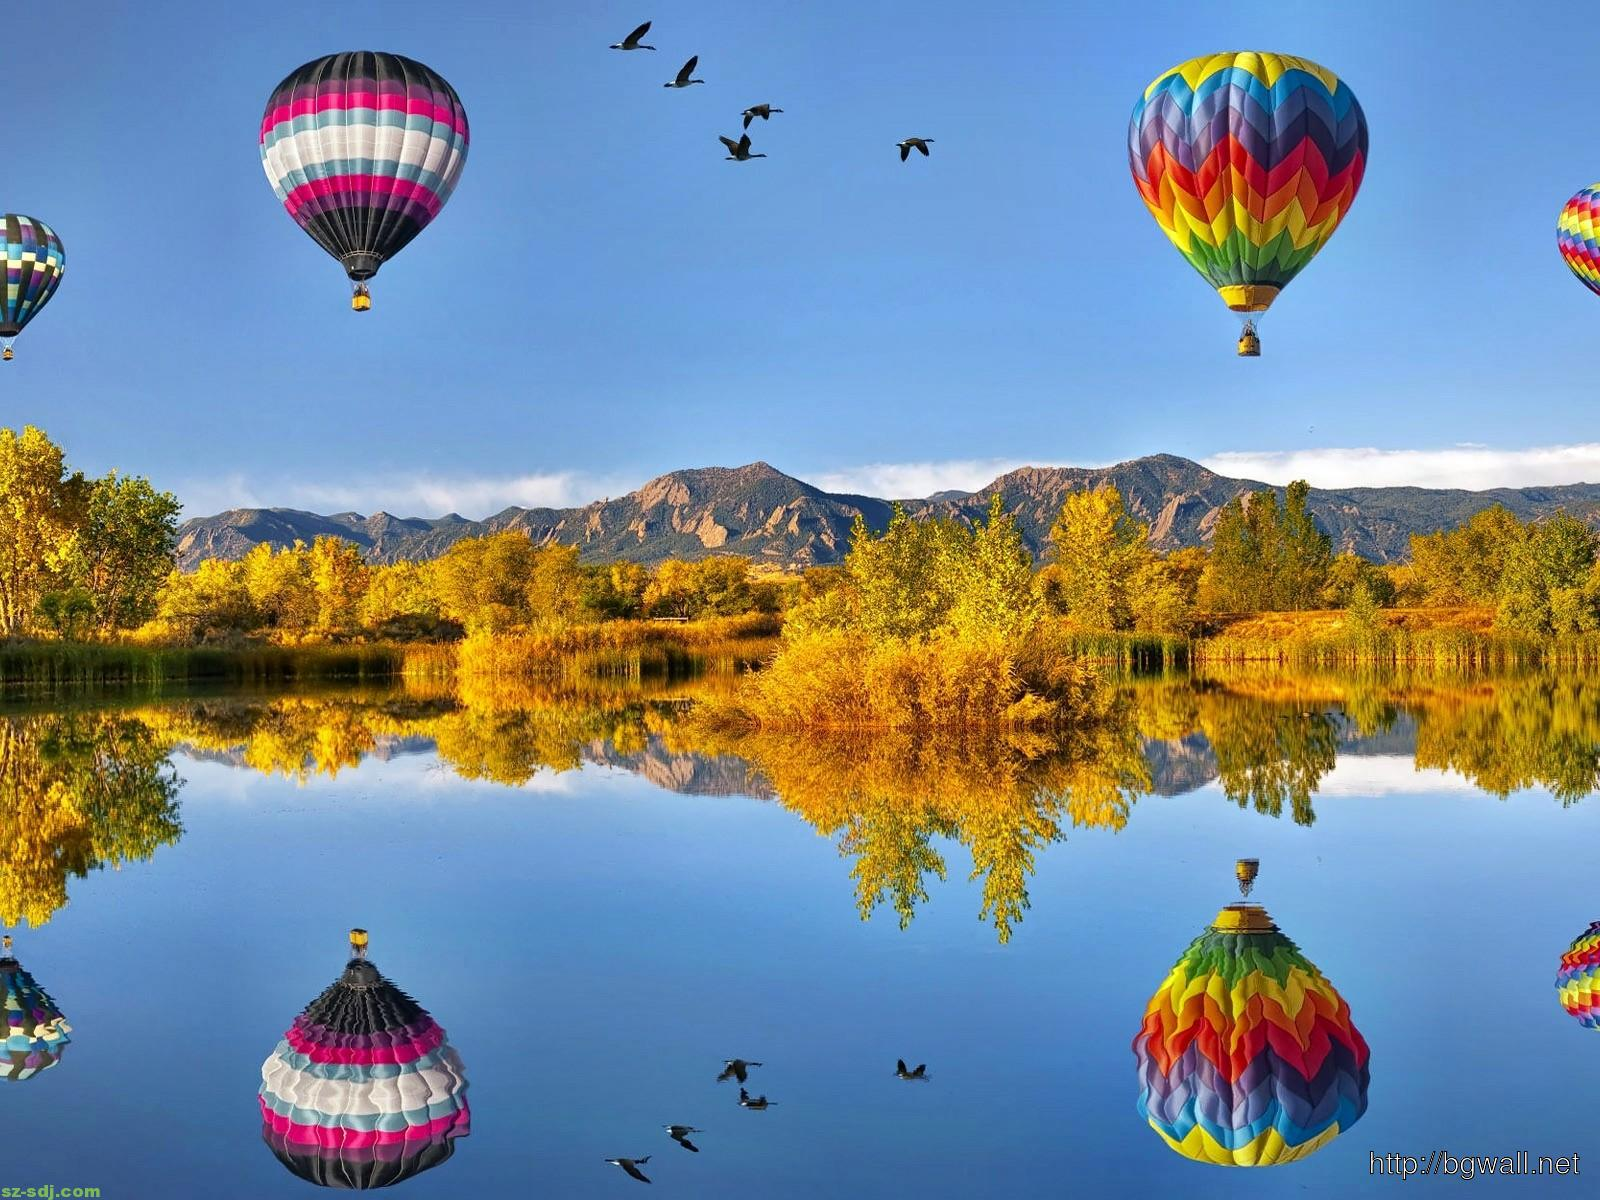 Hot-Air-Balloons-Flying-Over-The-Lake-Wallpaper-Image